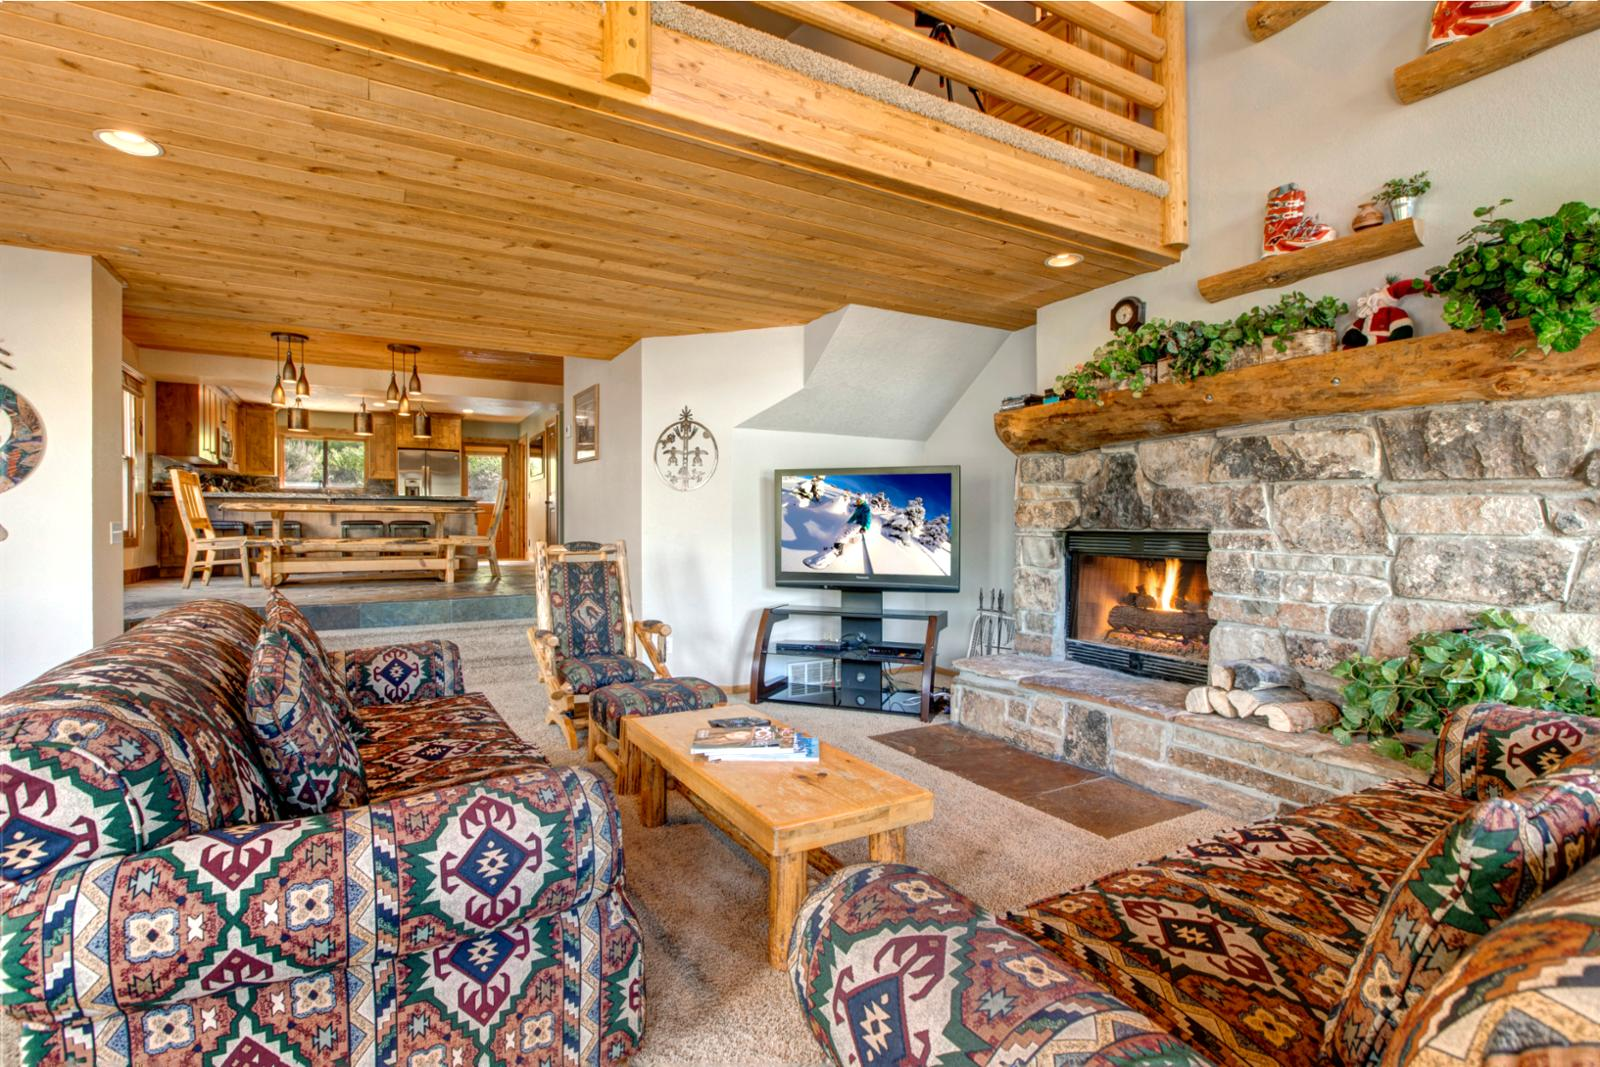 Snuggle up to a crackling wood fireplace and watch Park City Channel